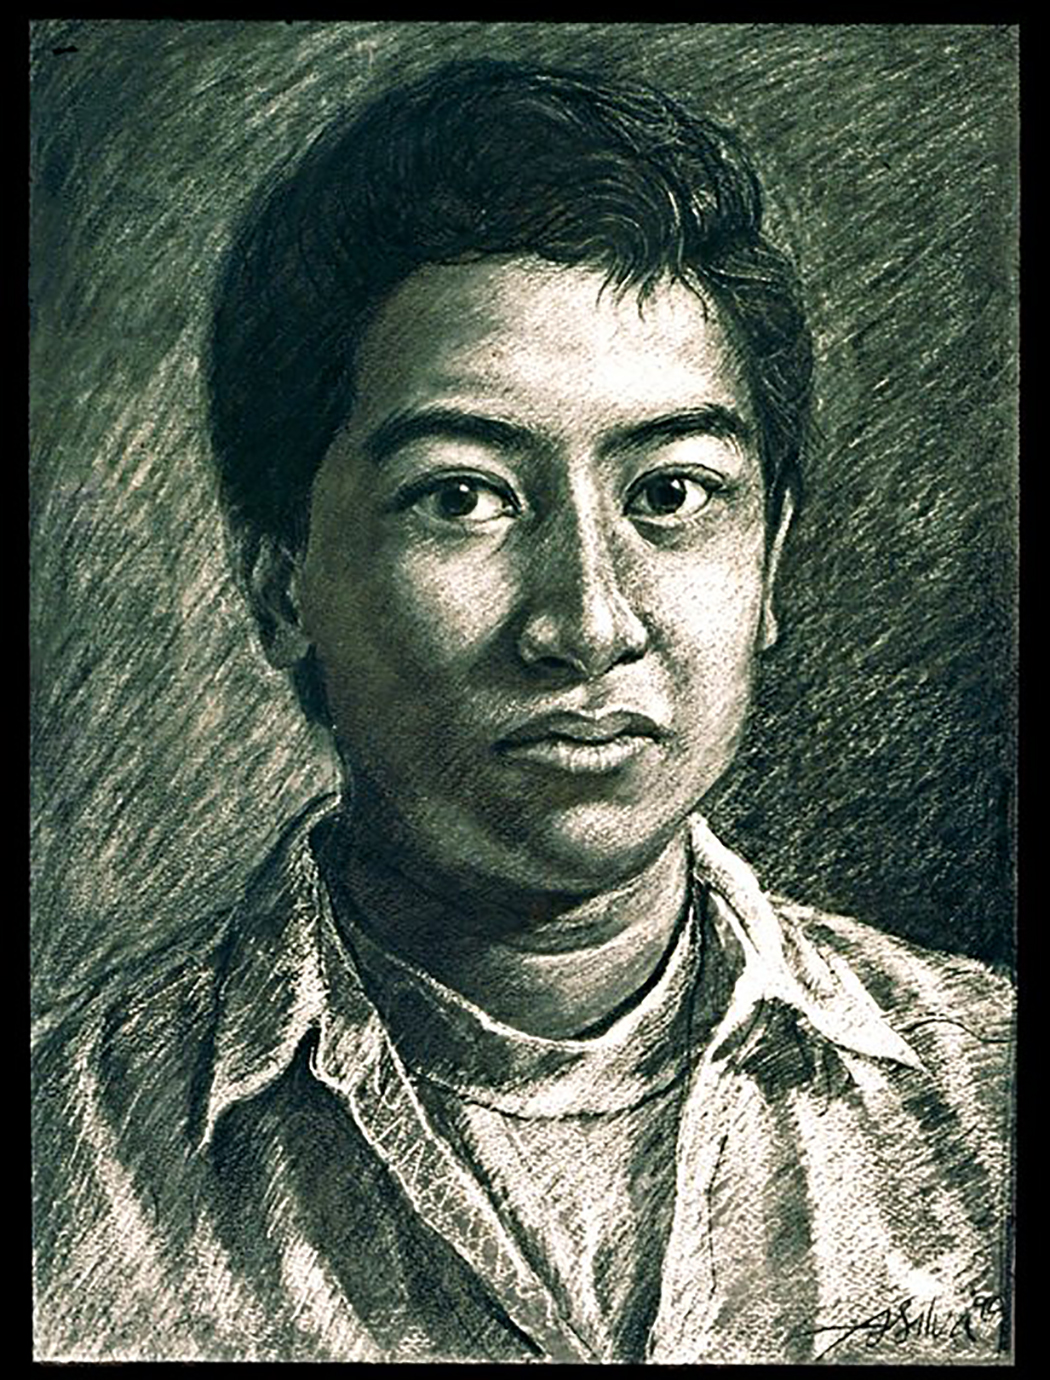 Self Portrait (1990)